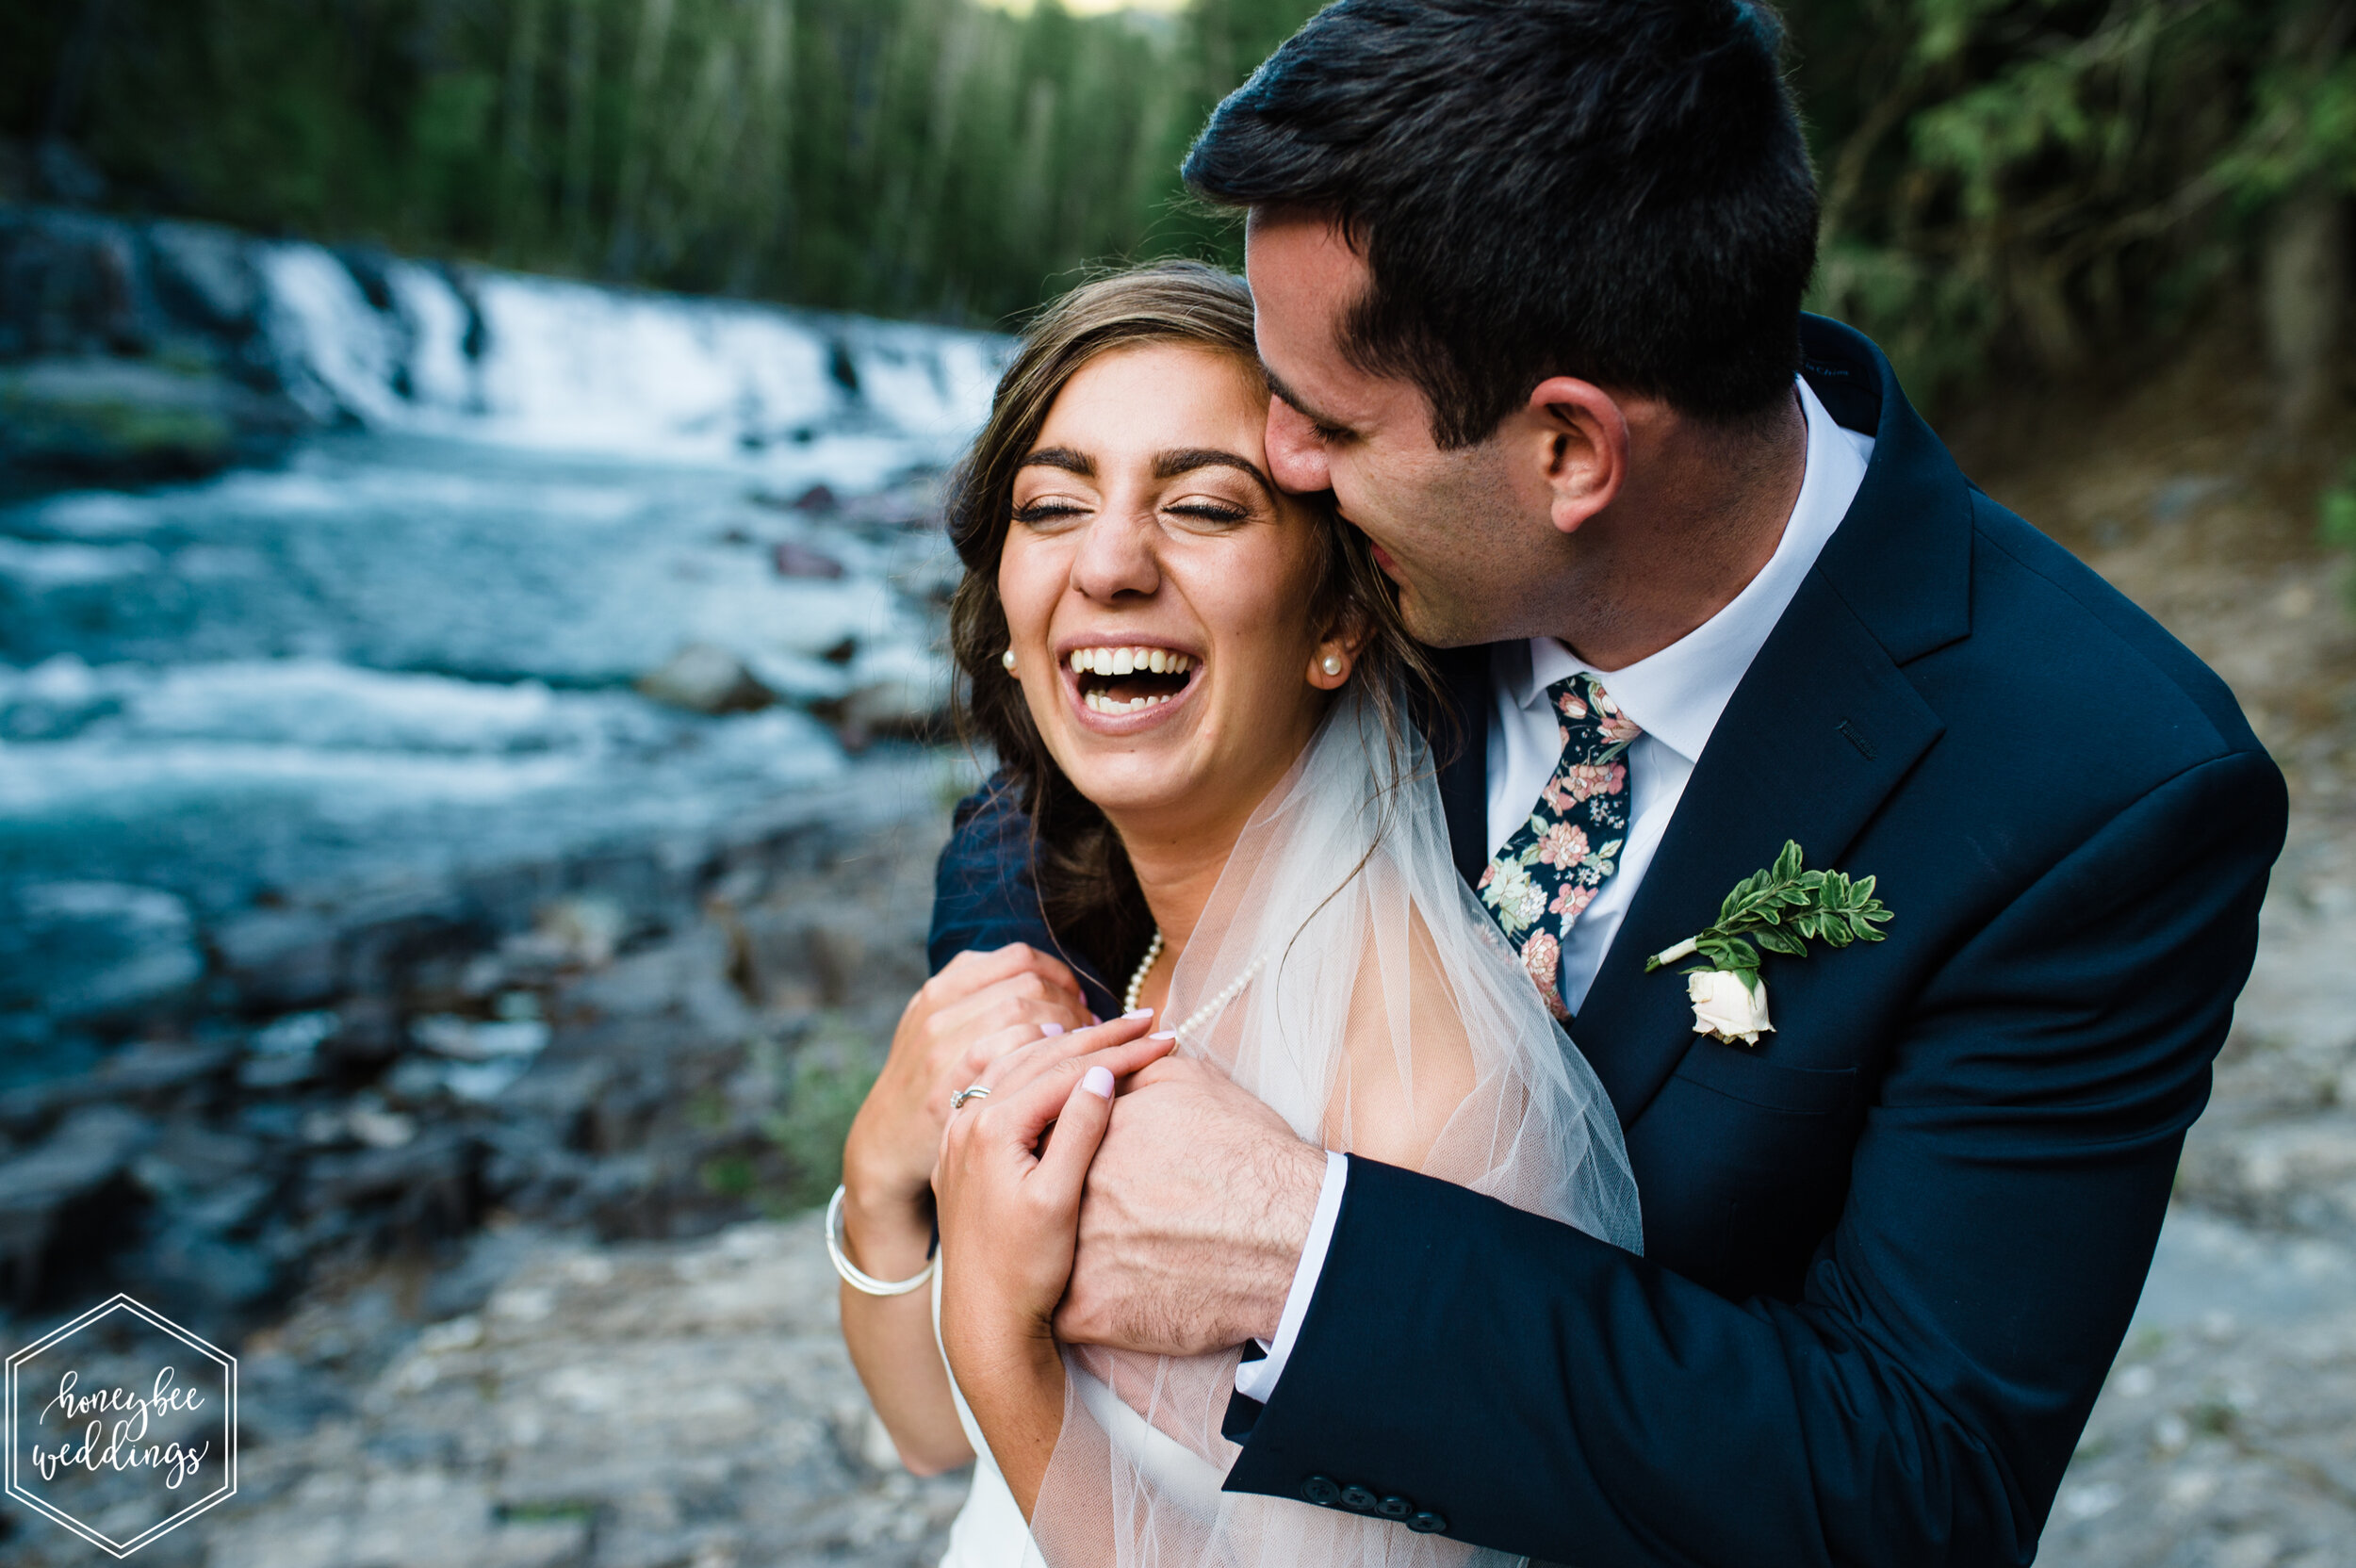 001Glacier National Park Wedding_Glacier Outdoor Center_Honeybee Weddings_Anna & Seth_July 21, 2019-2449.jpg